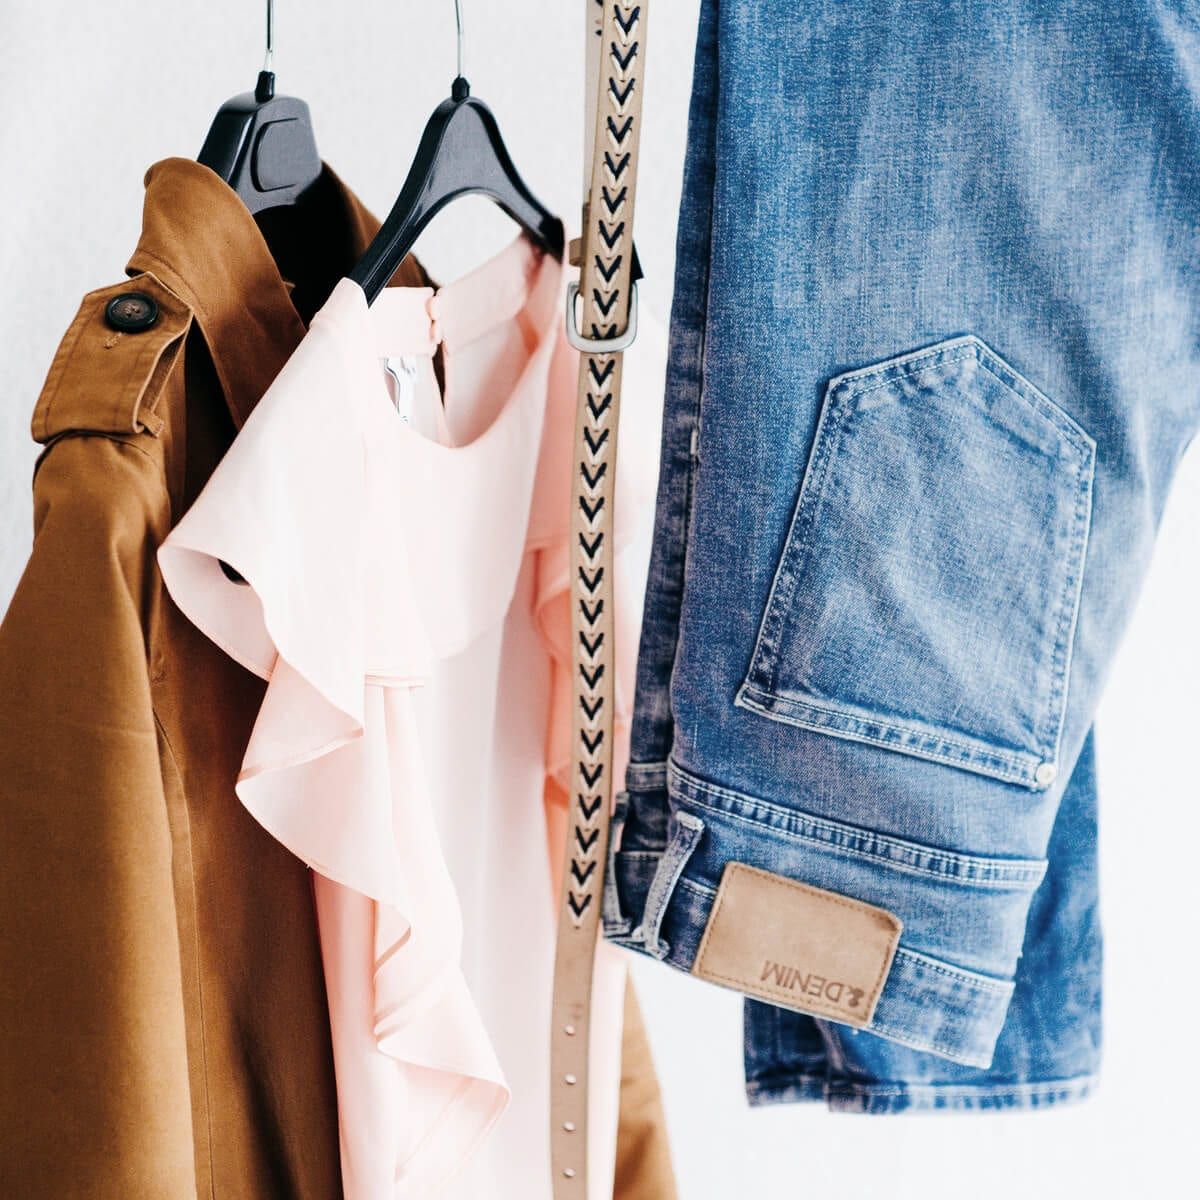 thredUP Review: Is It Worth Buying or Selling On This Online Consignment Store?